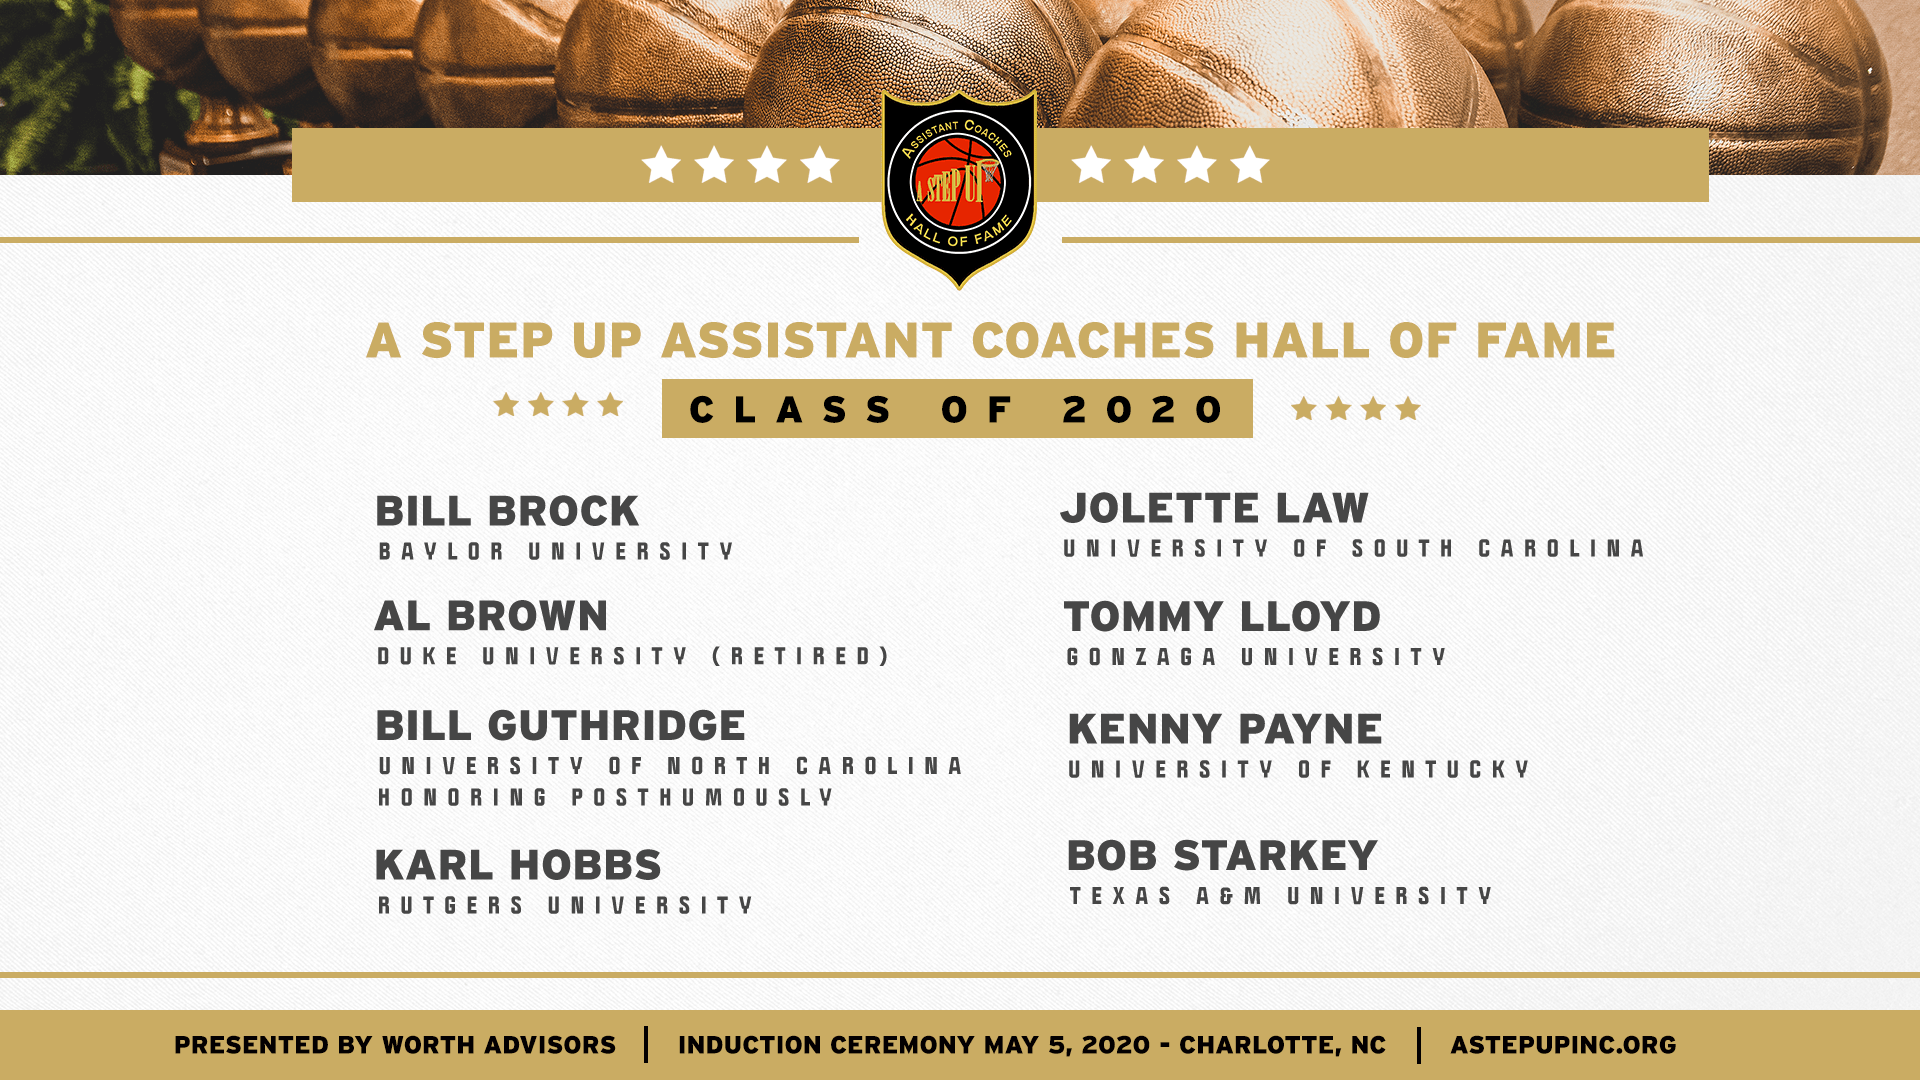 A STEP UP announces the Assistant Coaches Hall of Fame Class of 2020